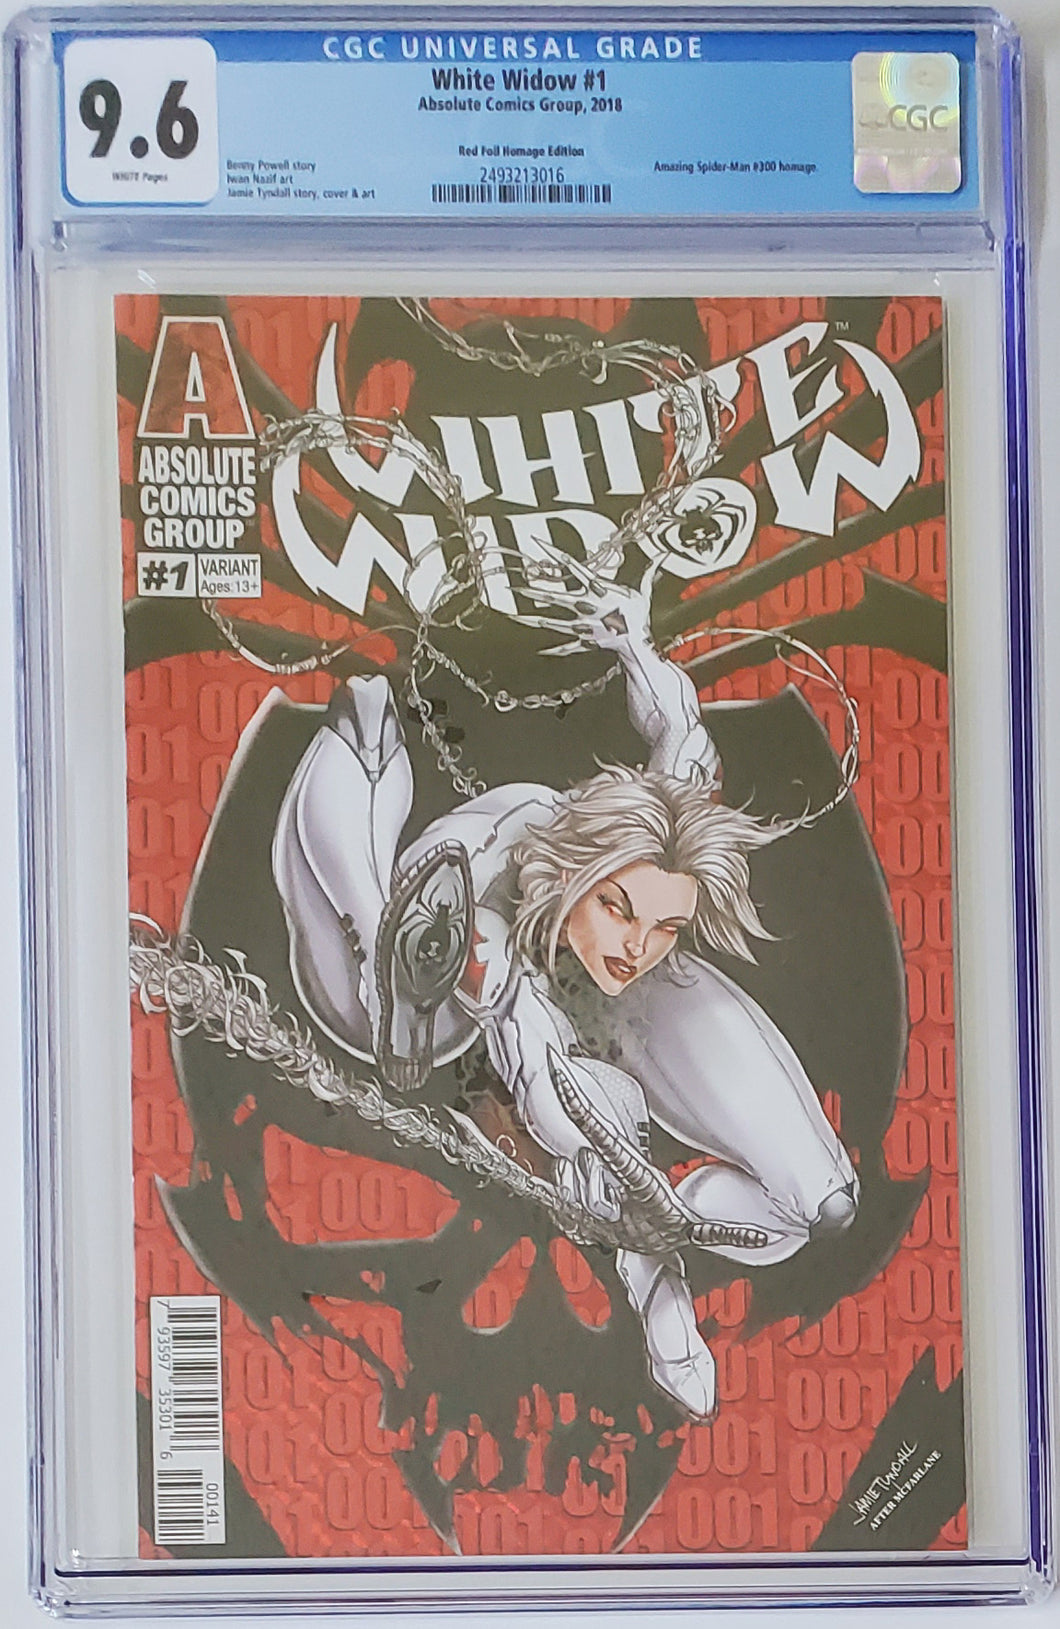 White Widow #1D - Homage Webslinger - CGC 9.6 Blue Label